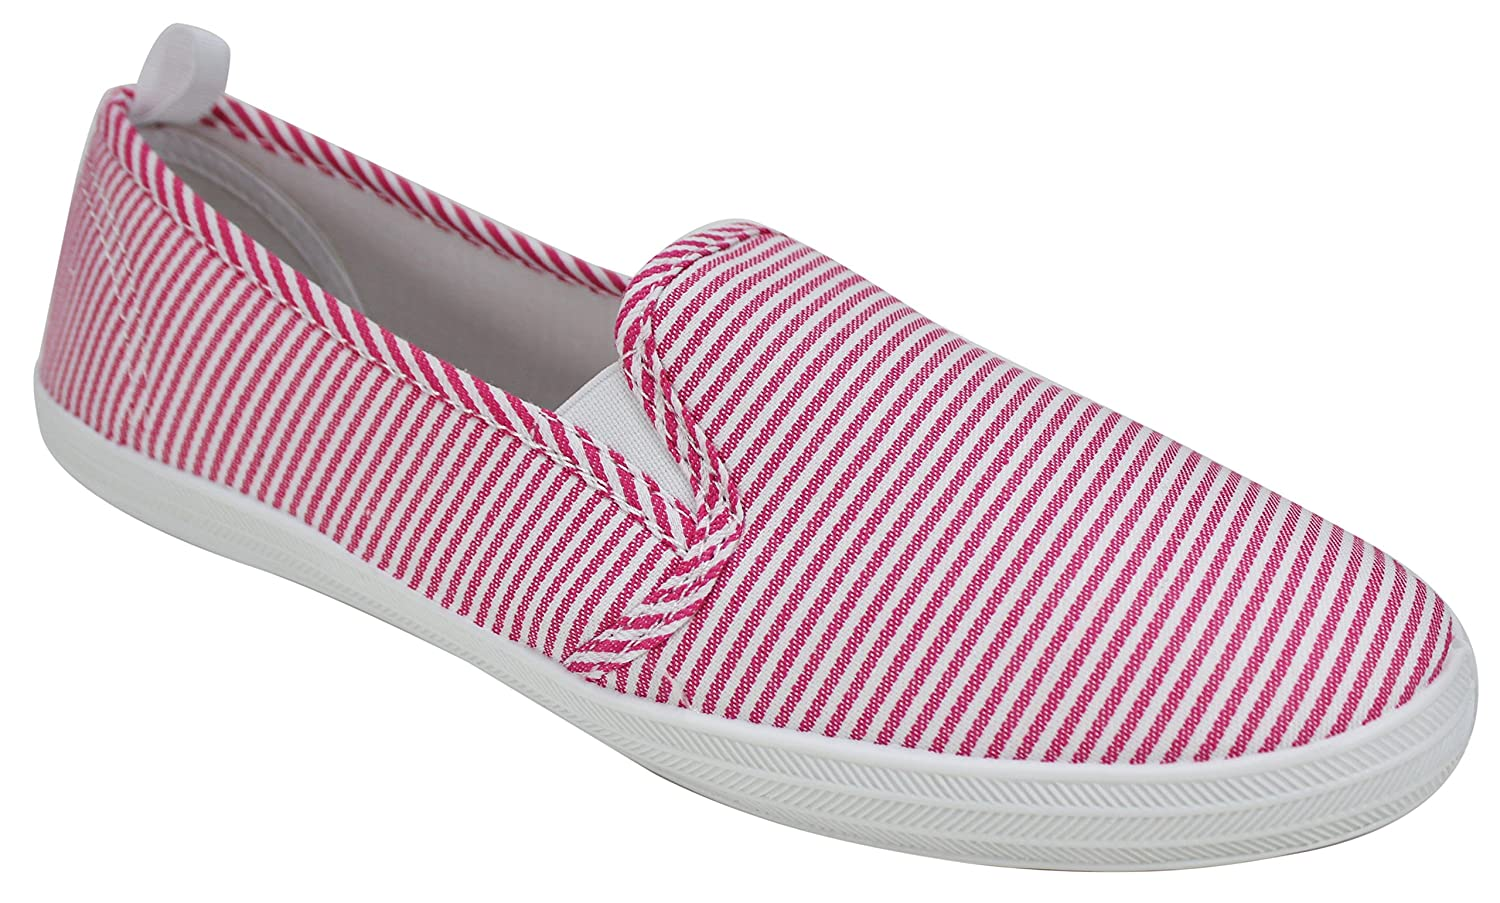 Take A Walk Womens Fashion Canvas Slip-on Shoe B07BFPVT6F 9 B(M) US|Pink/White